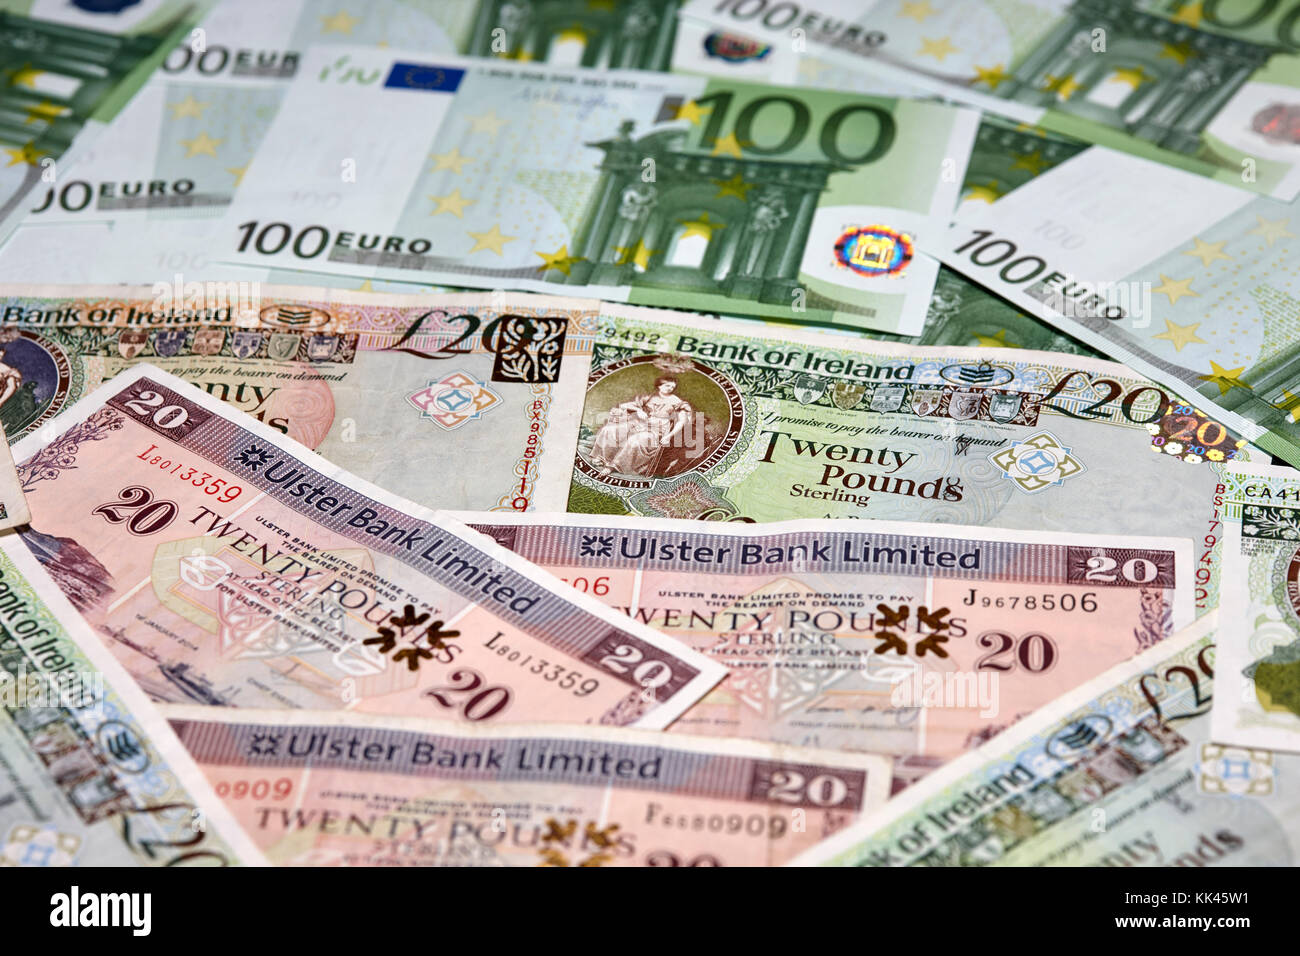 northern ireland banks pounds and euros cash - Stock Image